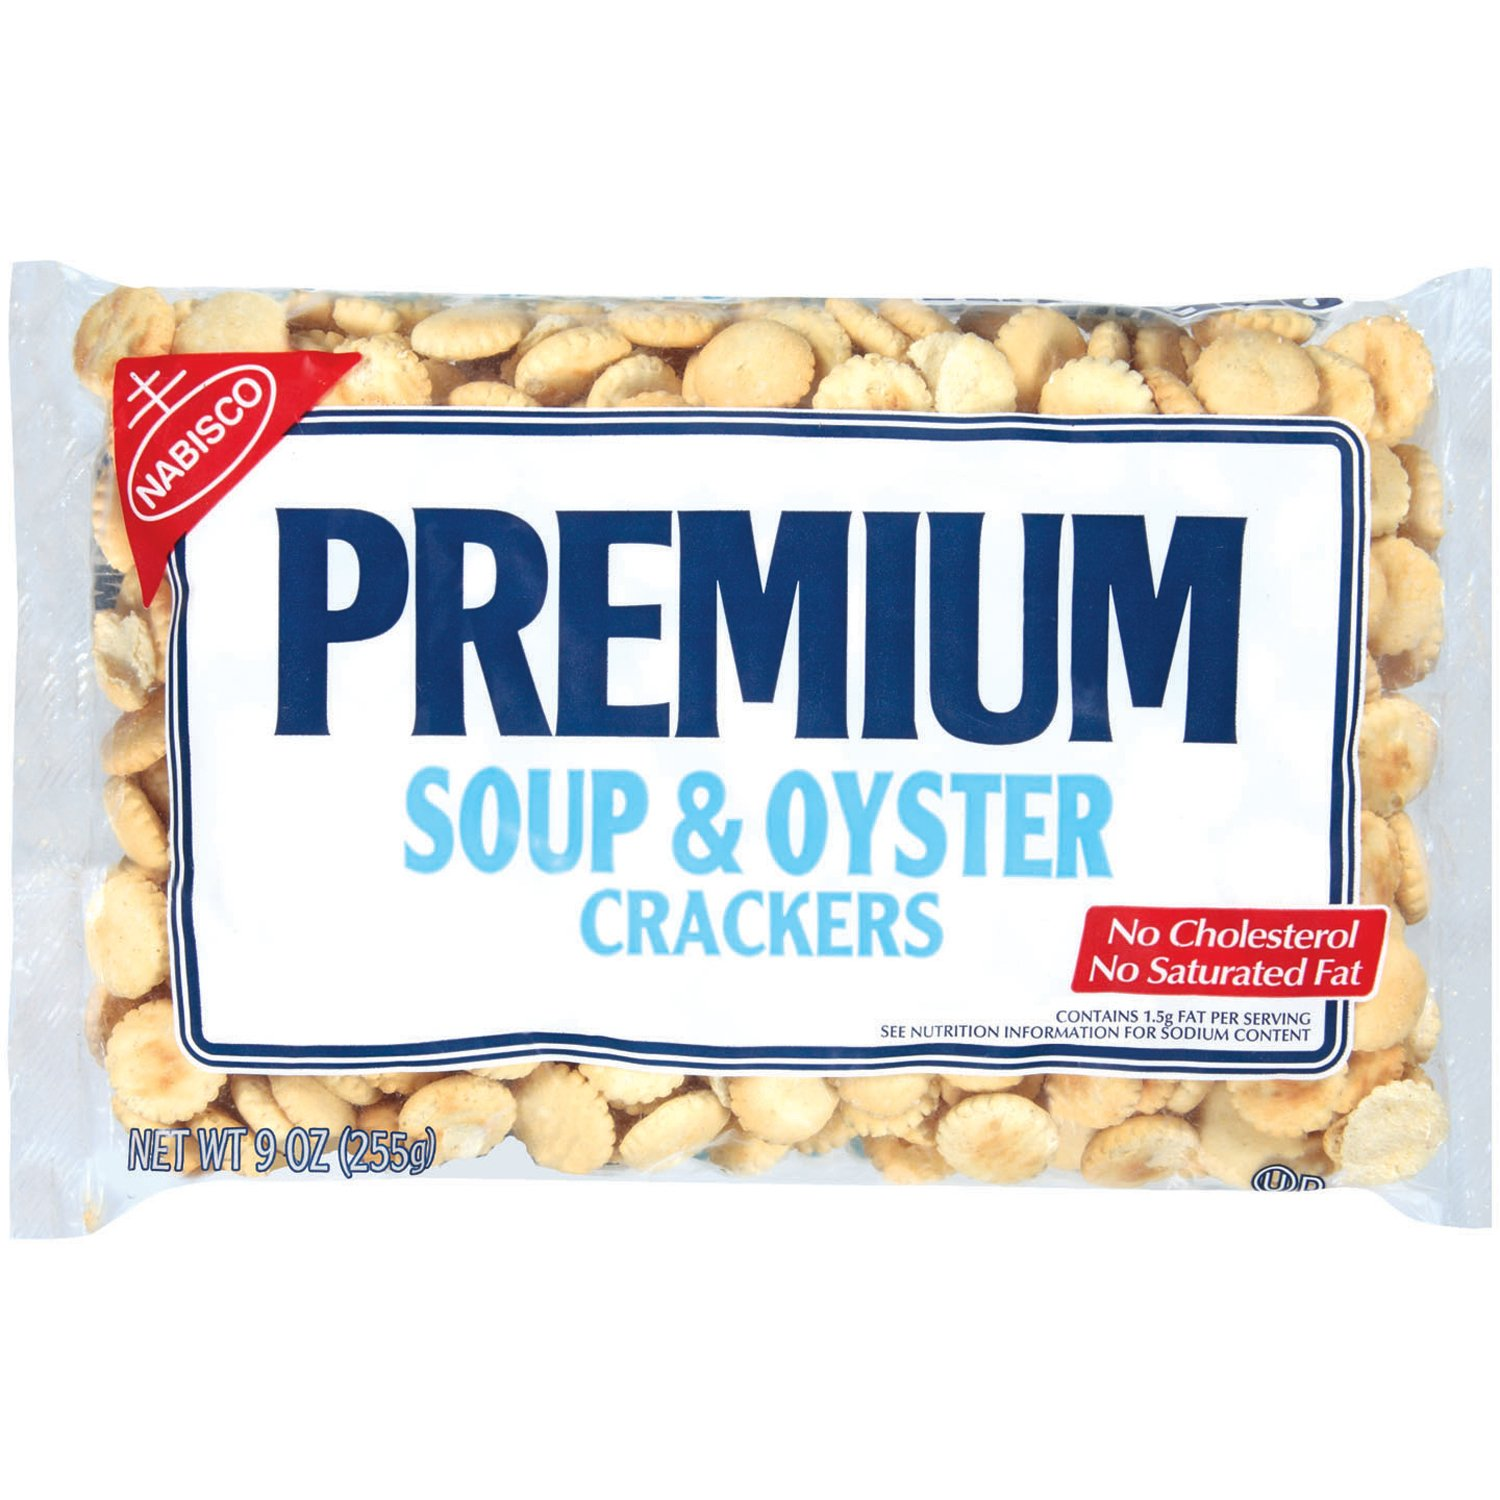 Premium Soup & Oyster Crackers, 9 Ounce (Pack of 12) by PREMIUM